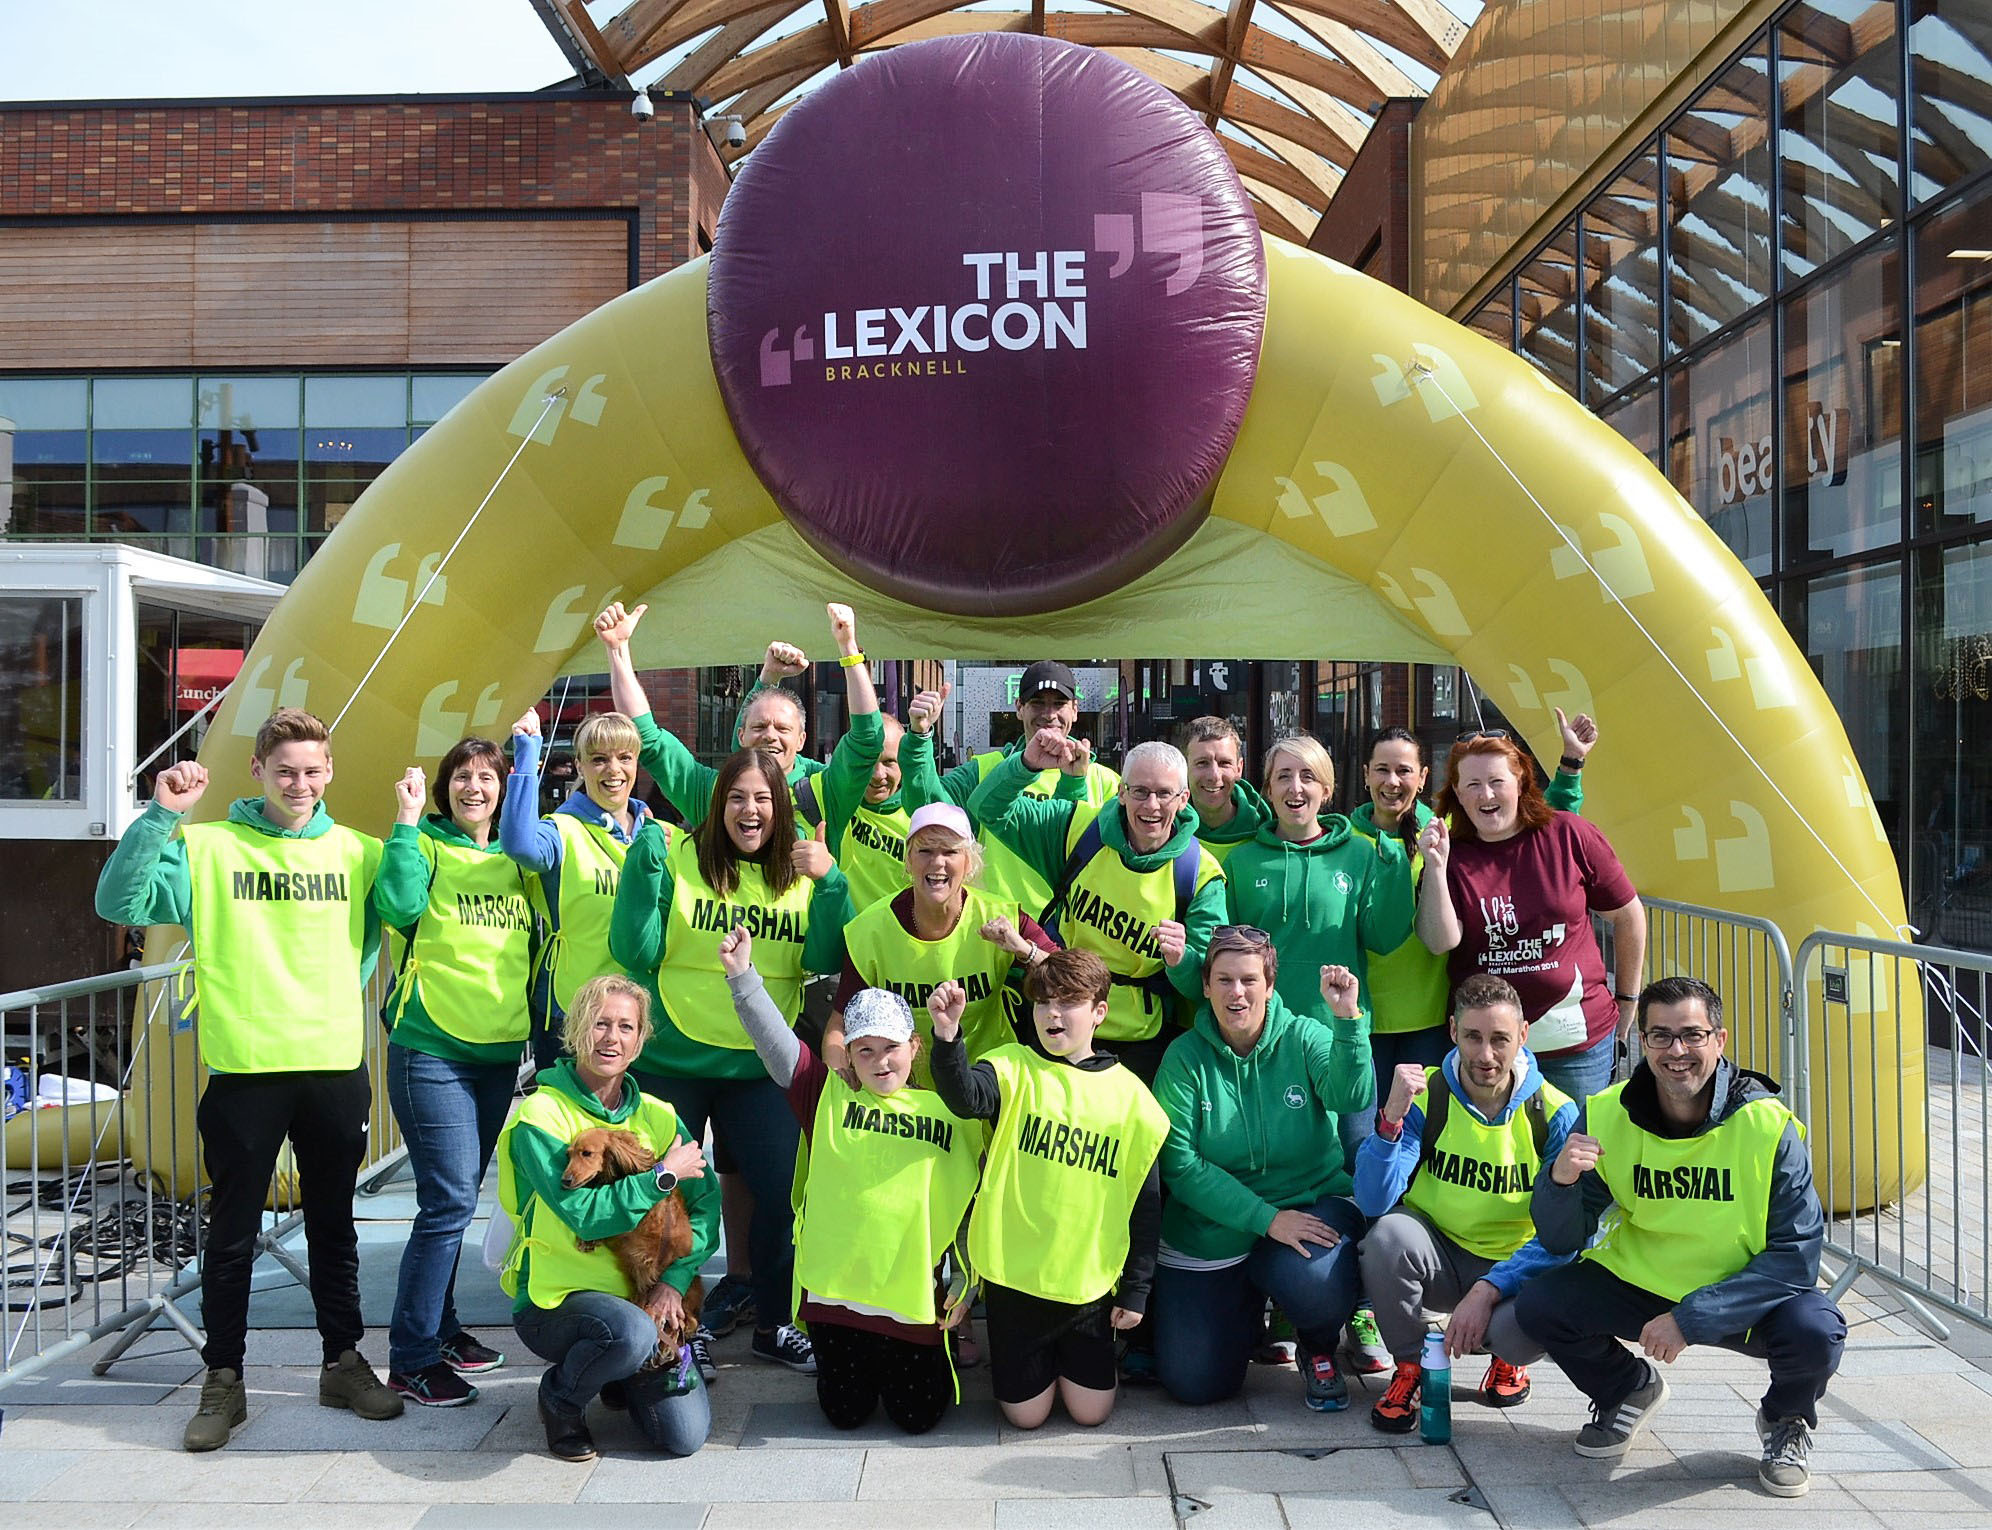 Bracknell Half Marathon marshals at finish line in The Lexicon